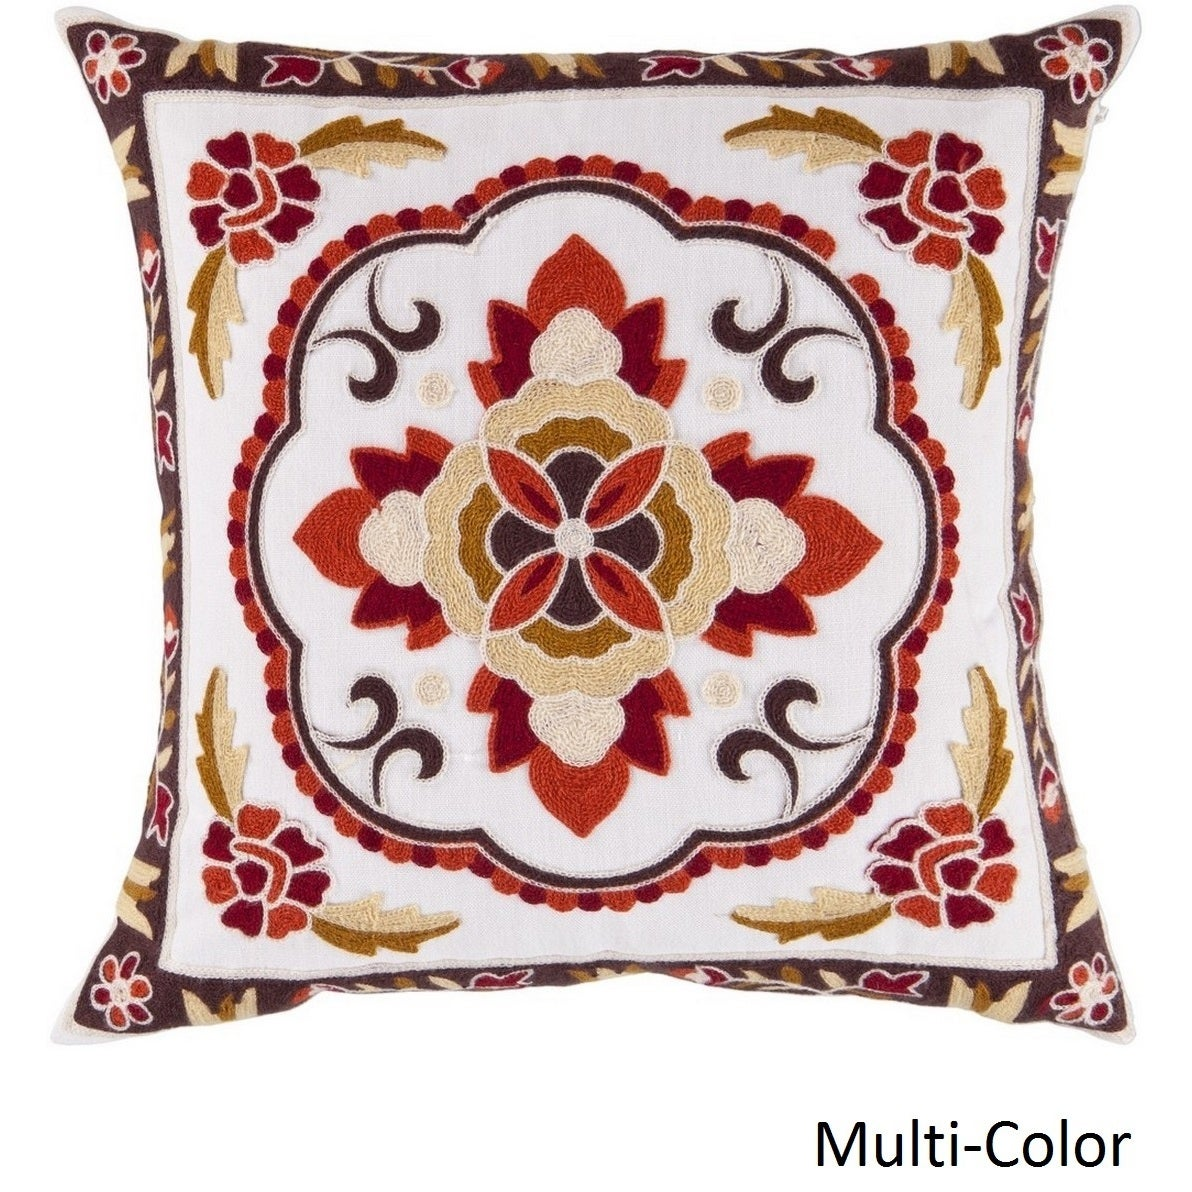 Decorative Sandbach 22-inch Flourish Poly or Feather Down Filled Pillow (Down)